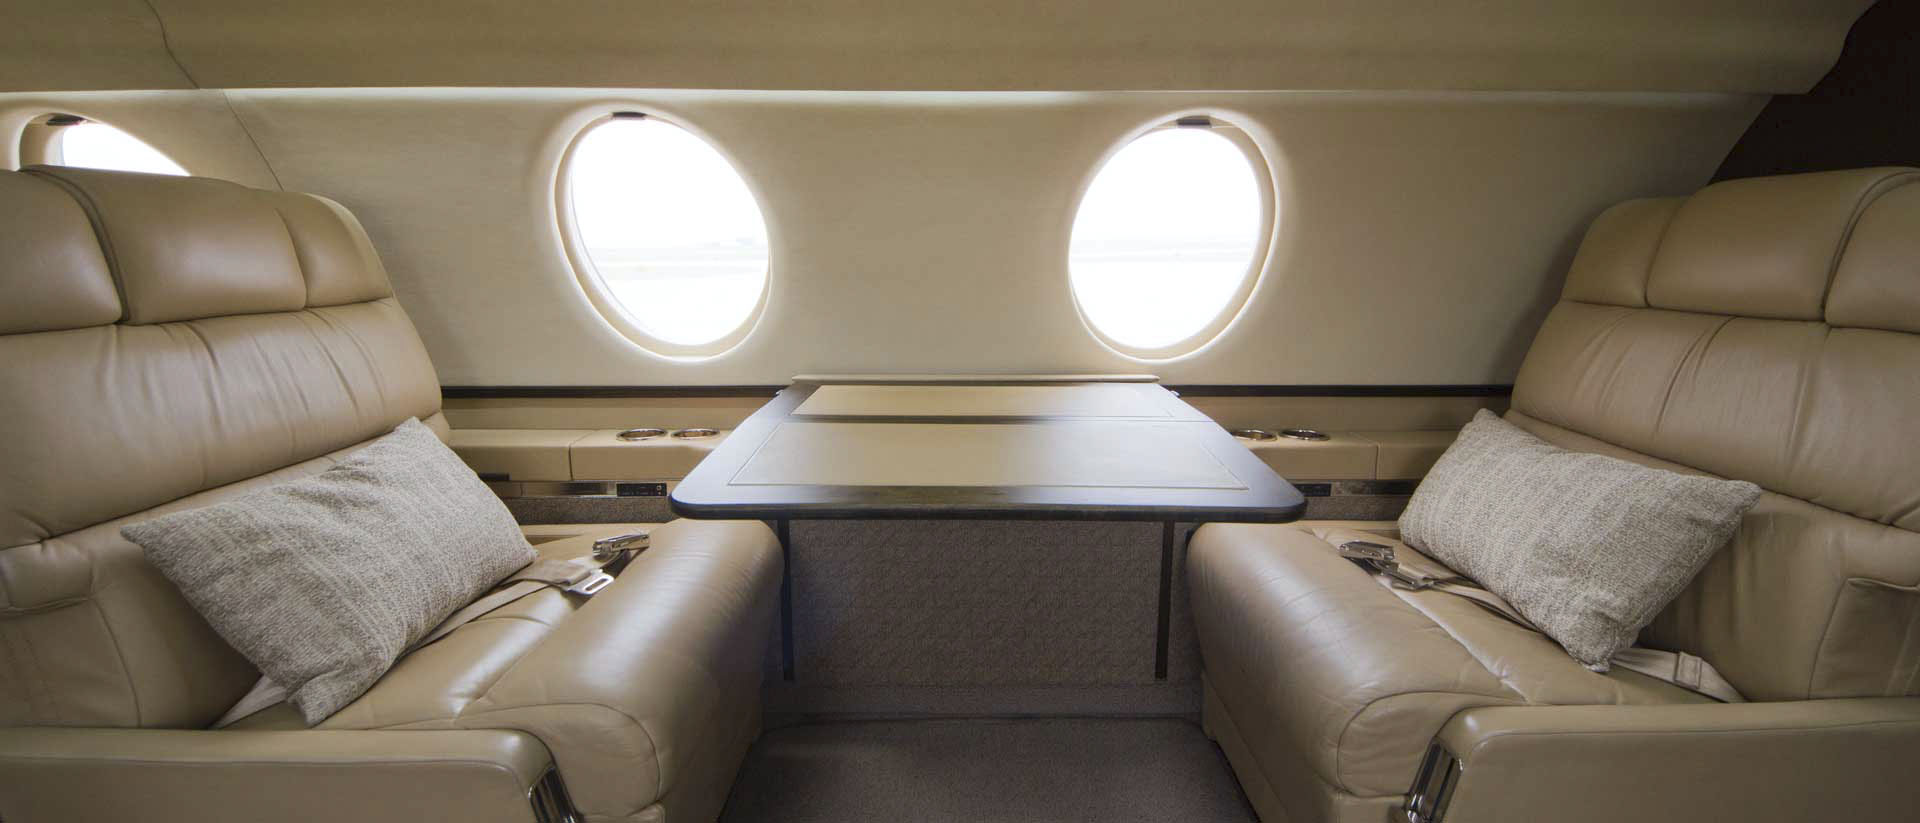 Falcon 20 Interior Club Seats